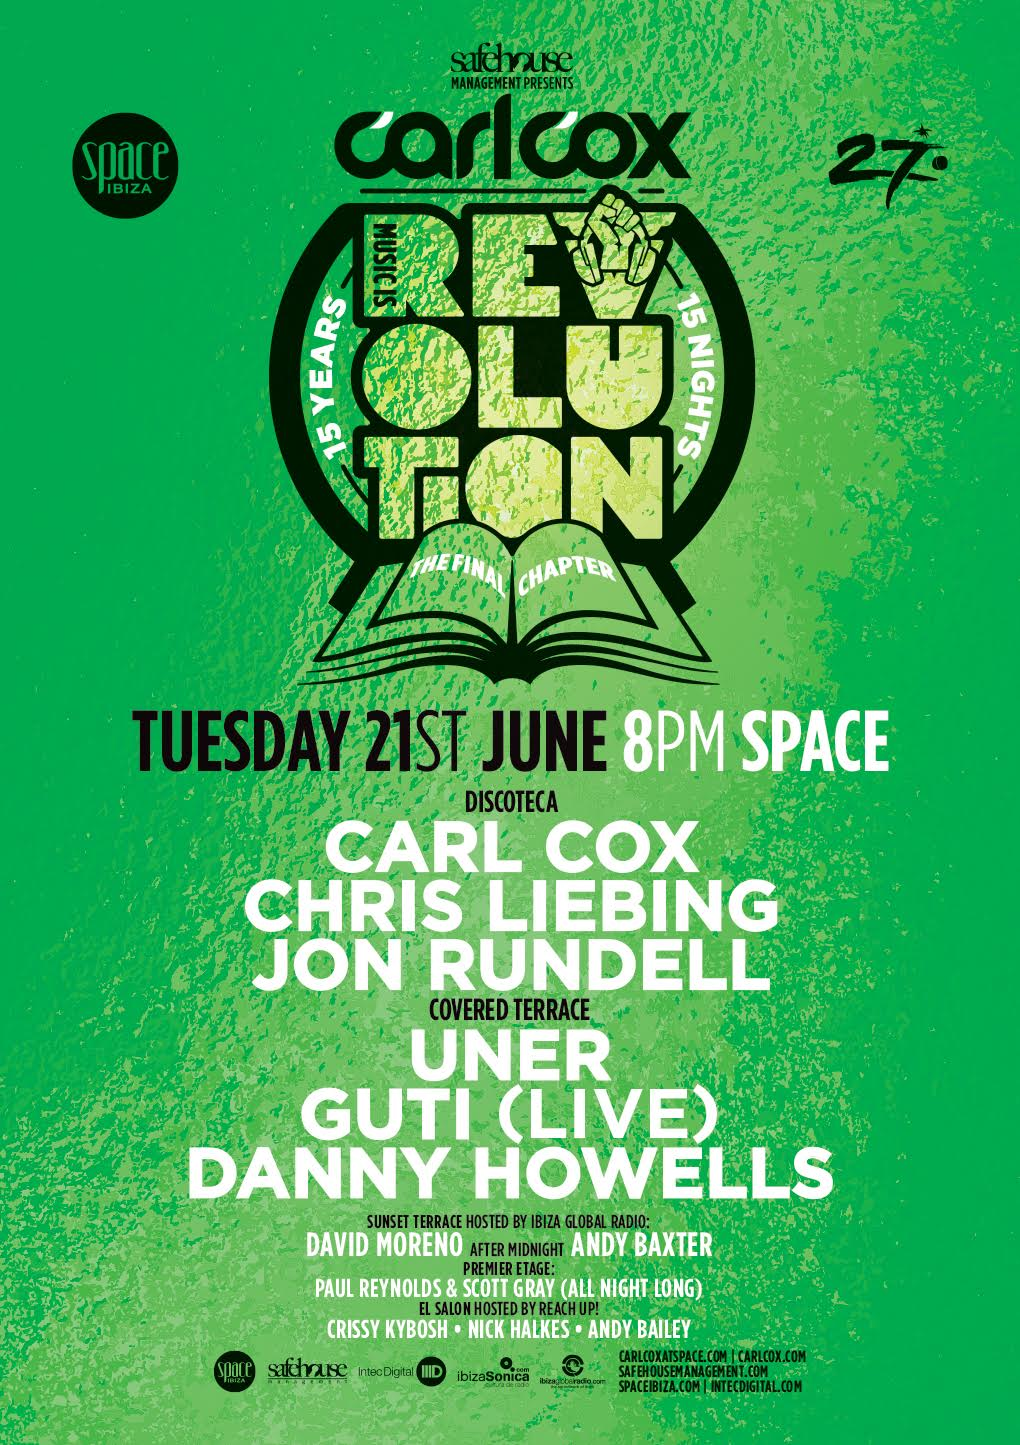 download → Carl Cox, Danny Howells, Guti, Uner - Music is Revolution, Week 2 (Space, Ibiza) - 720p HD - 21-Jun-2016